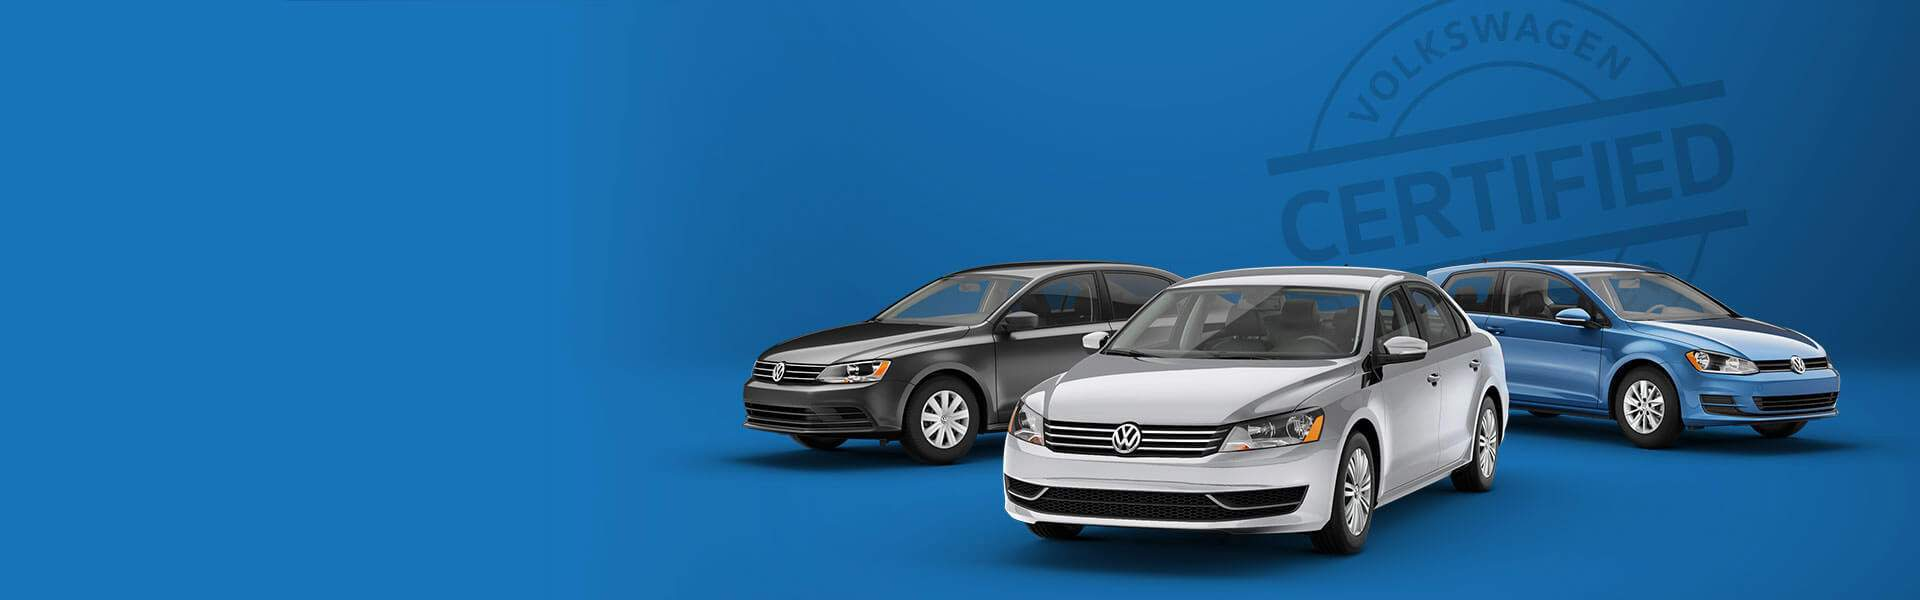 Volkswagen Certified Pre-Owned in Newtown Square, PA